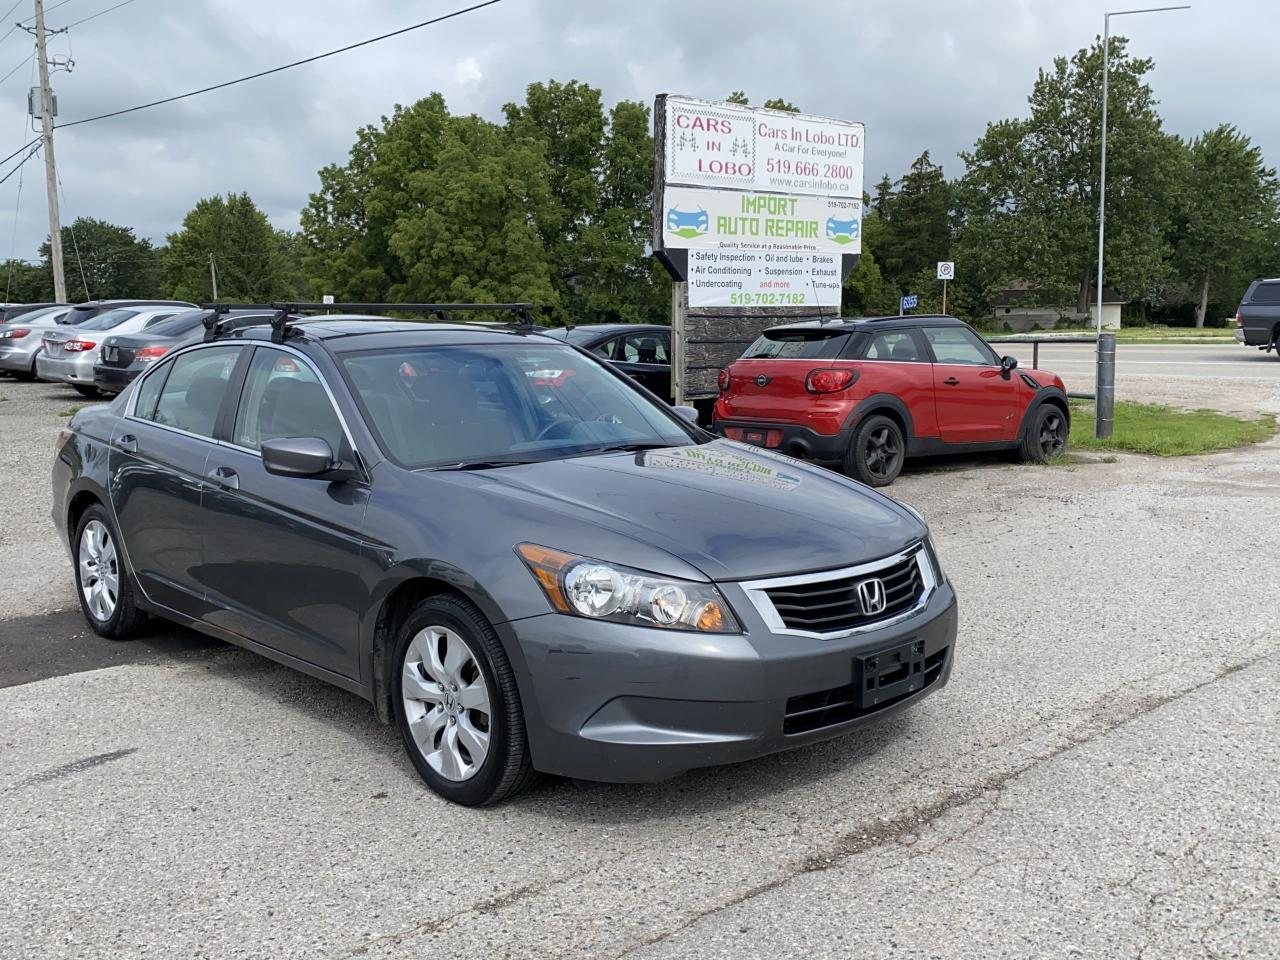 used 2009 honda accord ex for sale in komoka, ontario carpages.ca